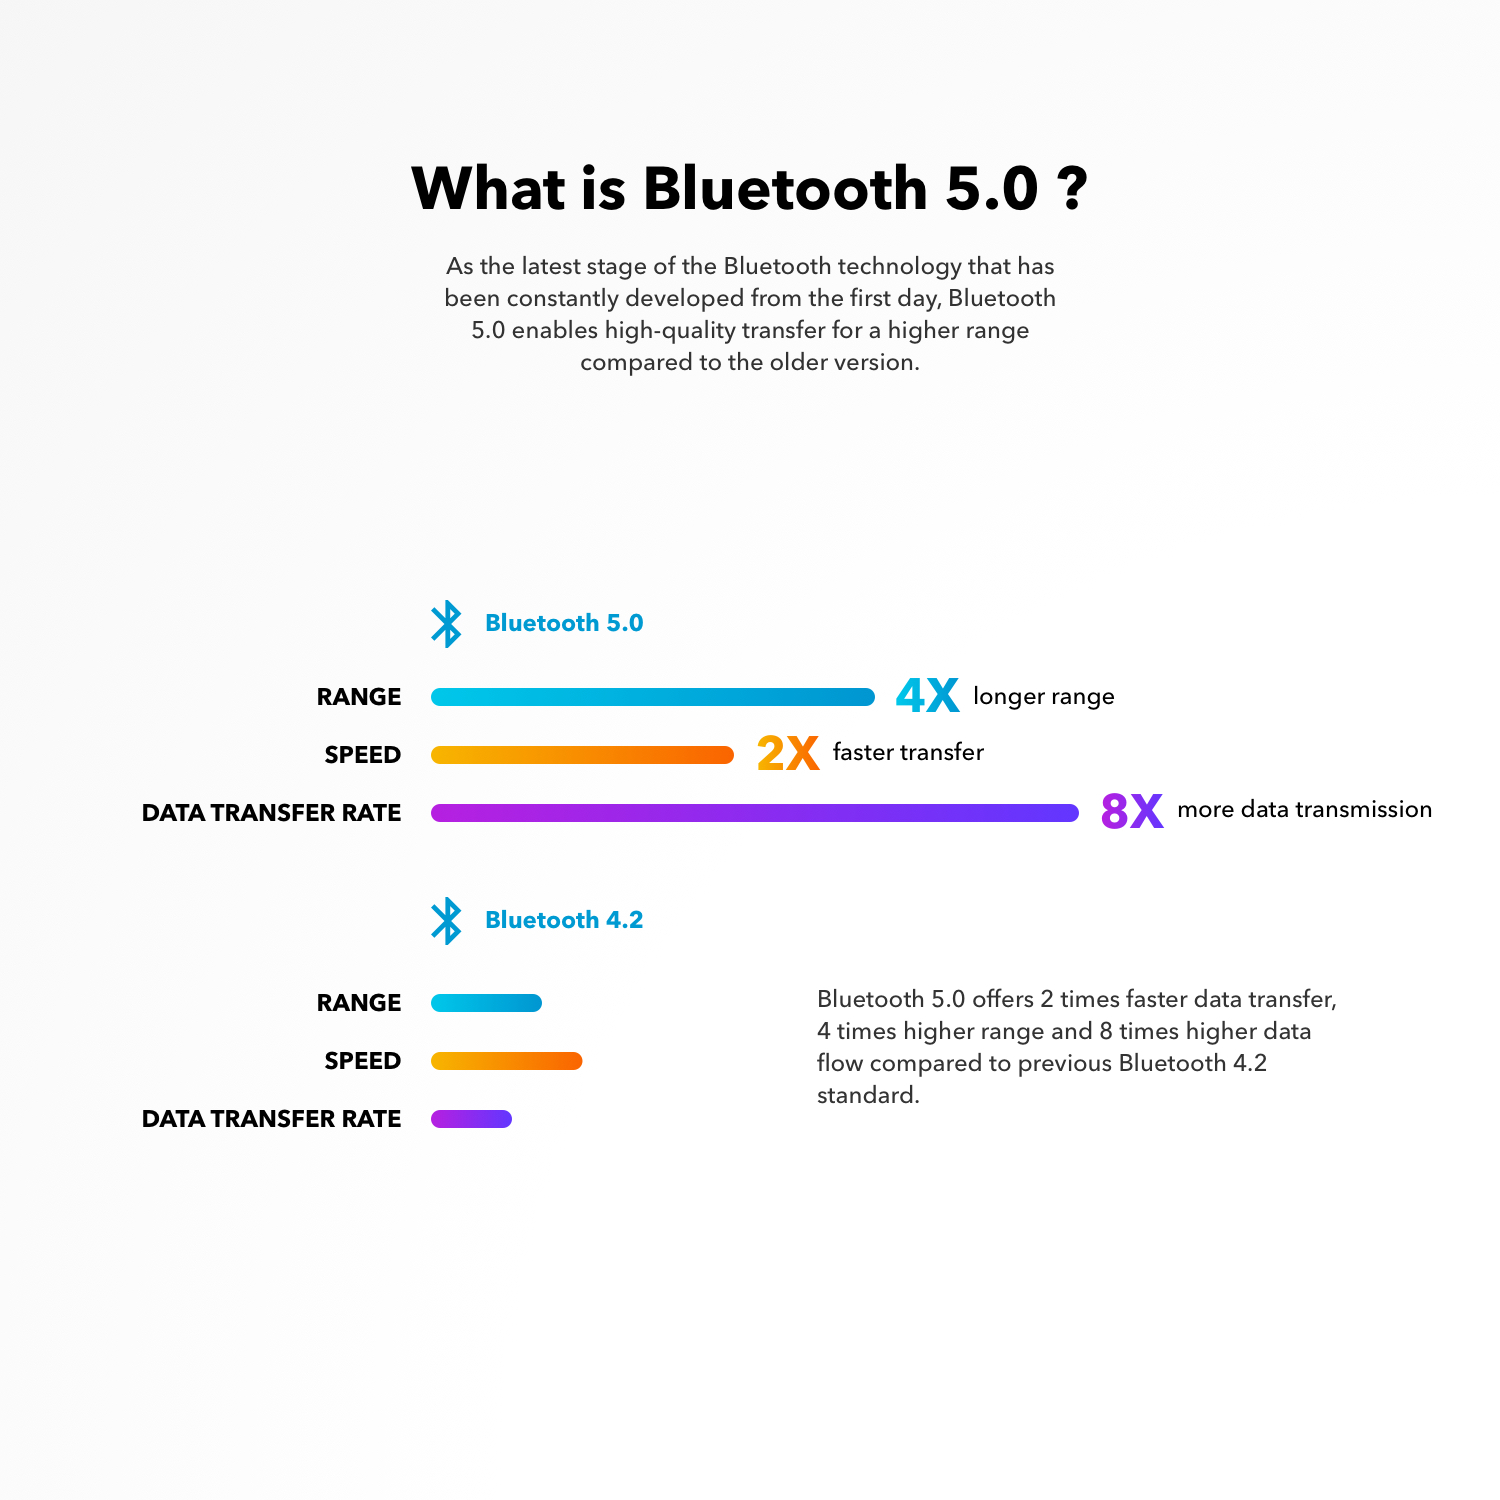 What is Bluetooth 5.0